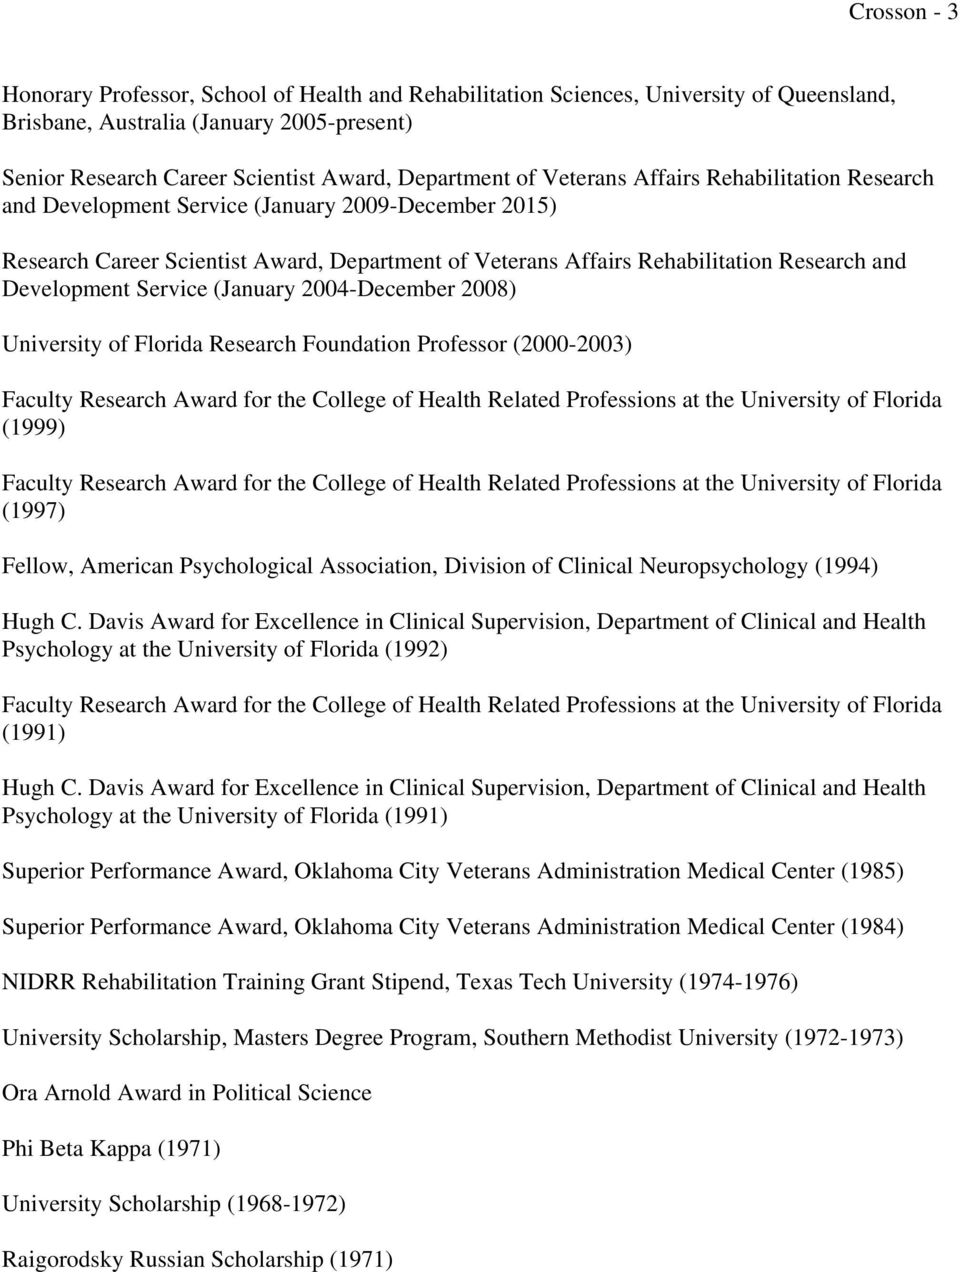 Development Service (January 2004-December 2008) University of Florida Research Foundation Professor (2000-2003) Faculty Research Award for the College of Health Related Professions at the University